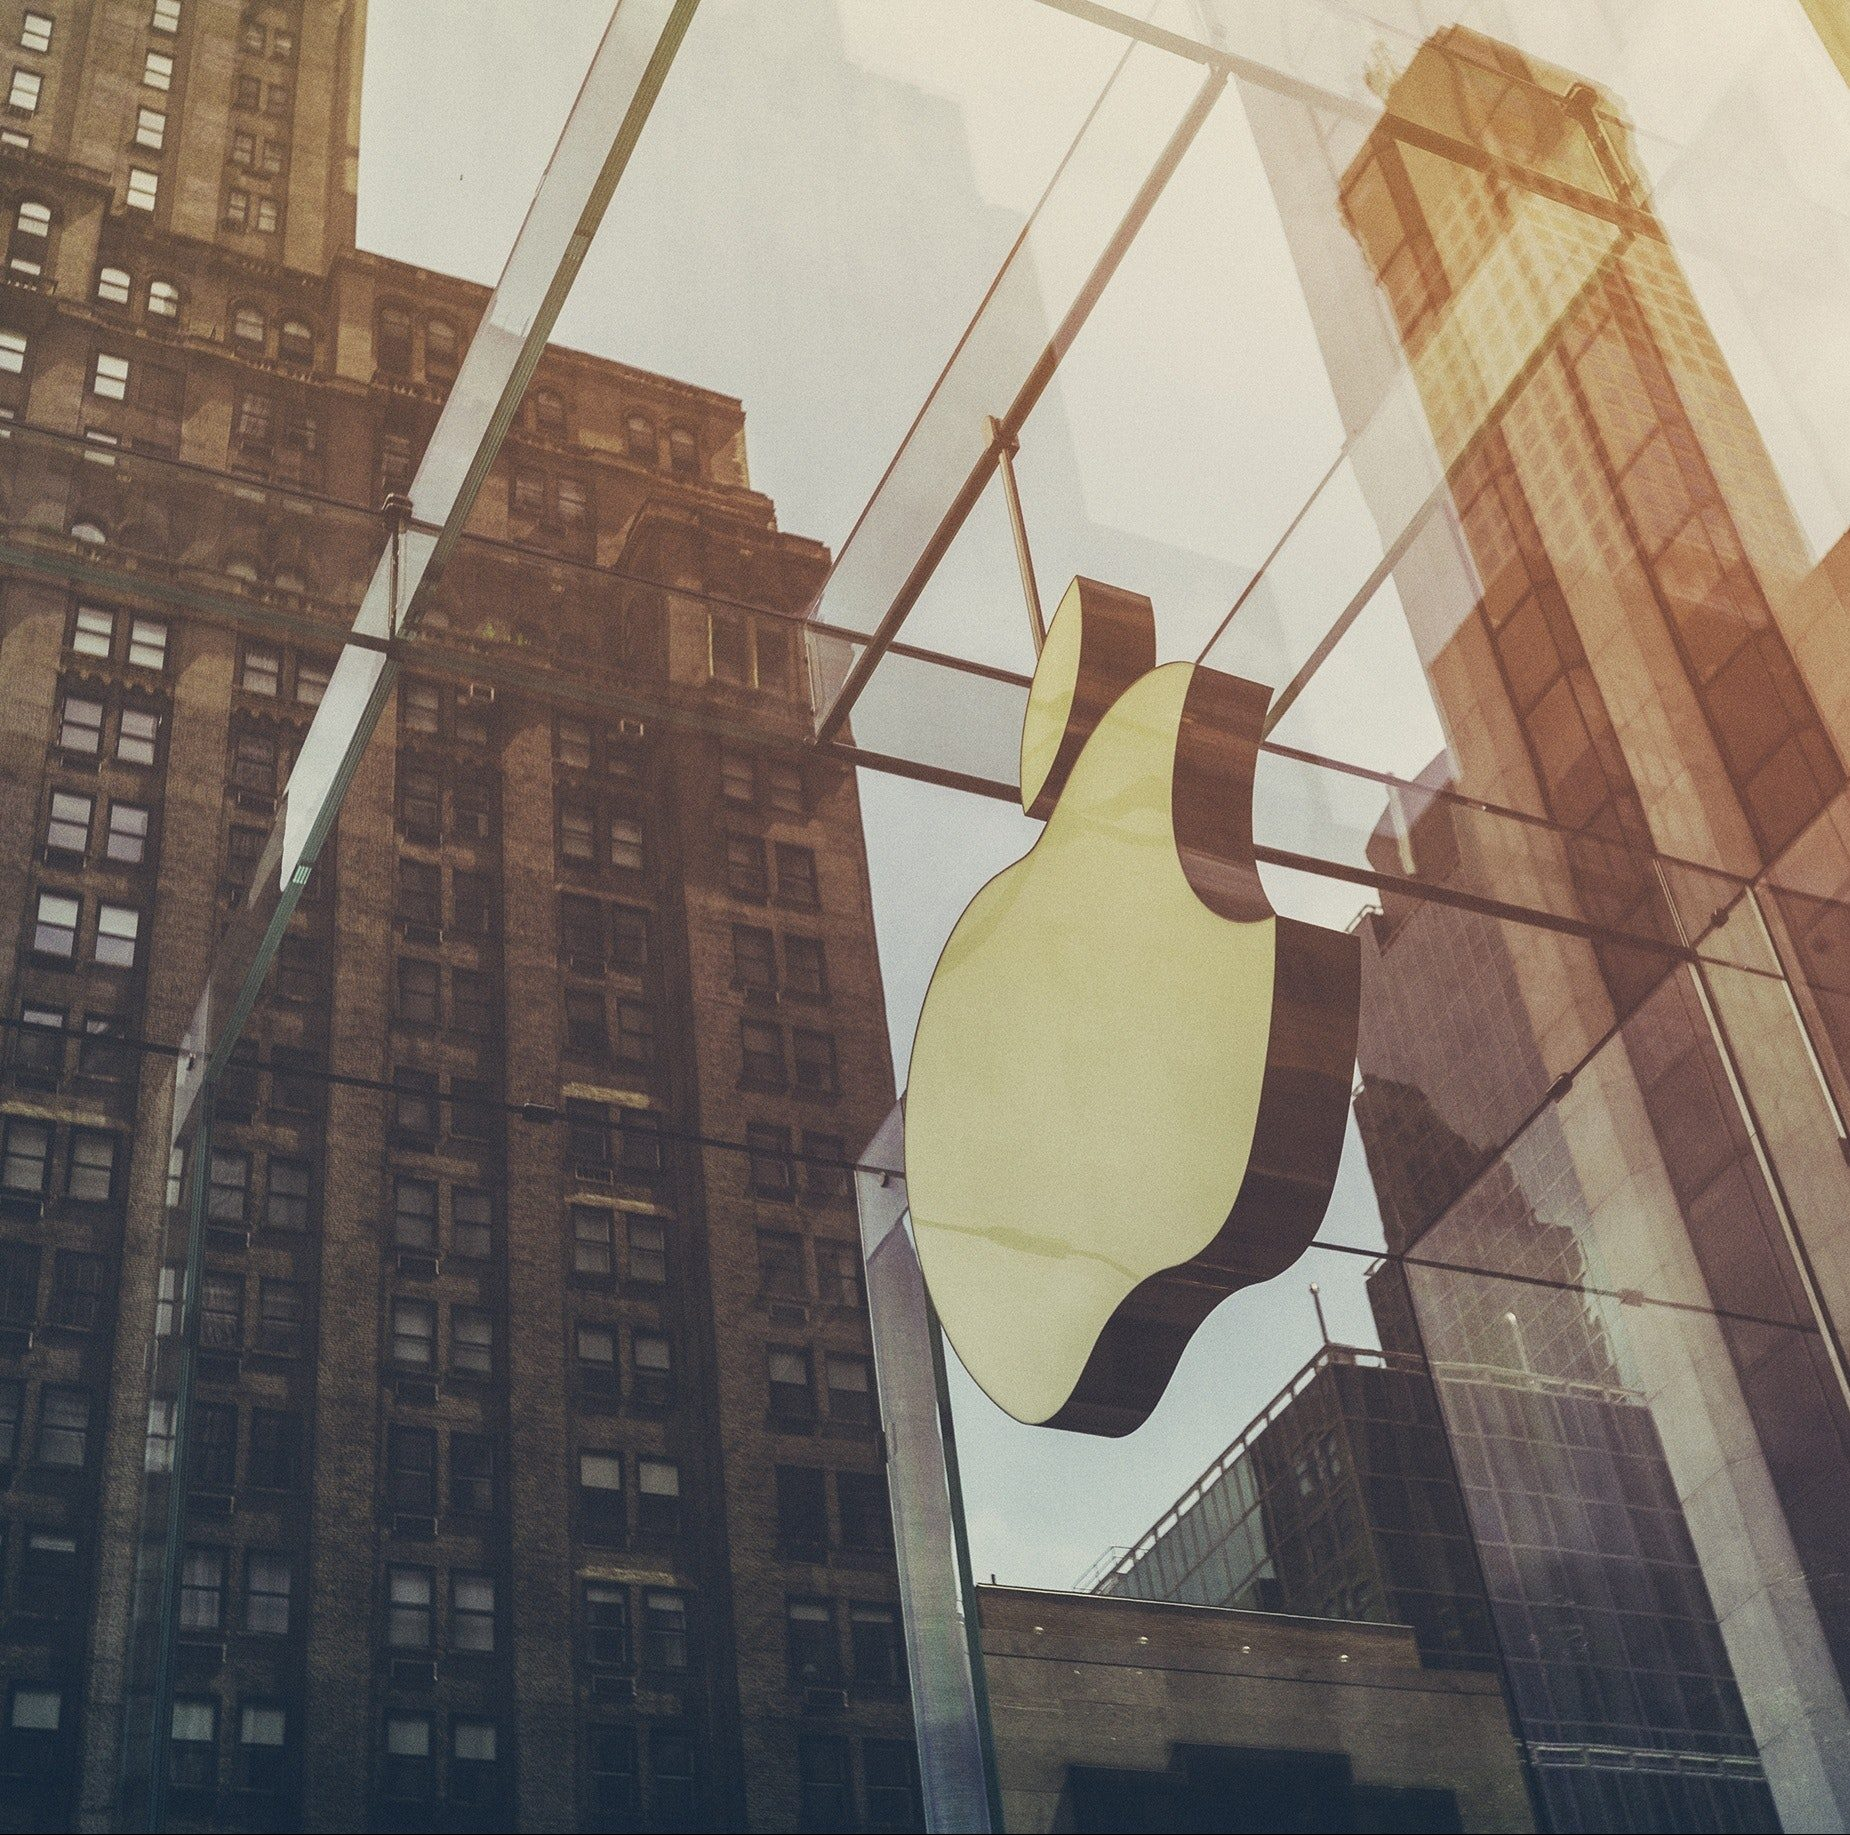 Apple Becomes First Trillion-Dollar Company Following Strong Q3 Results